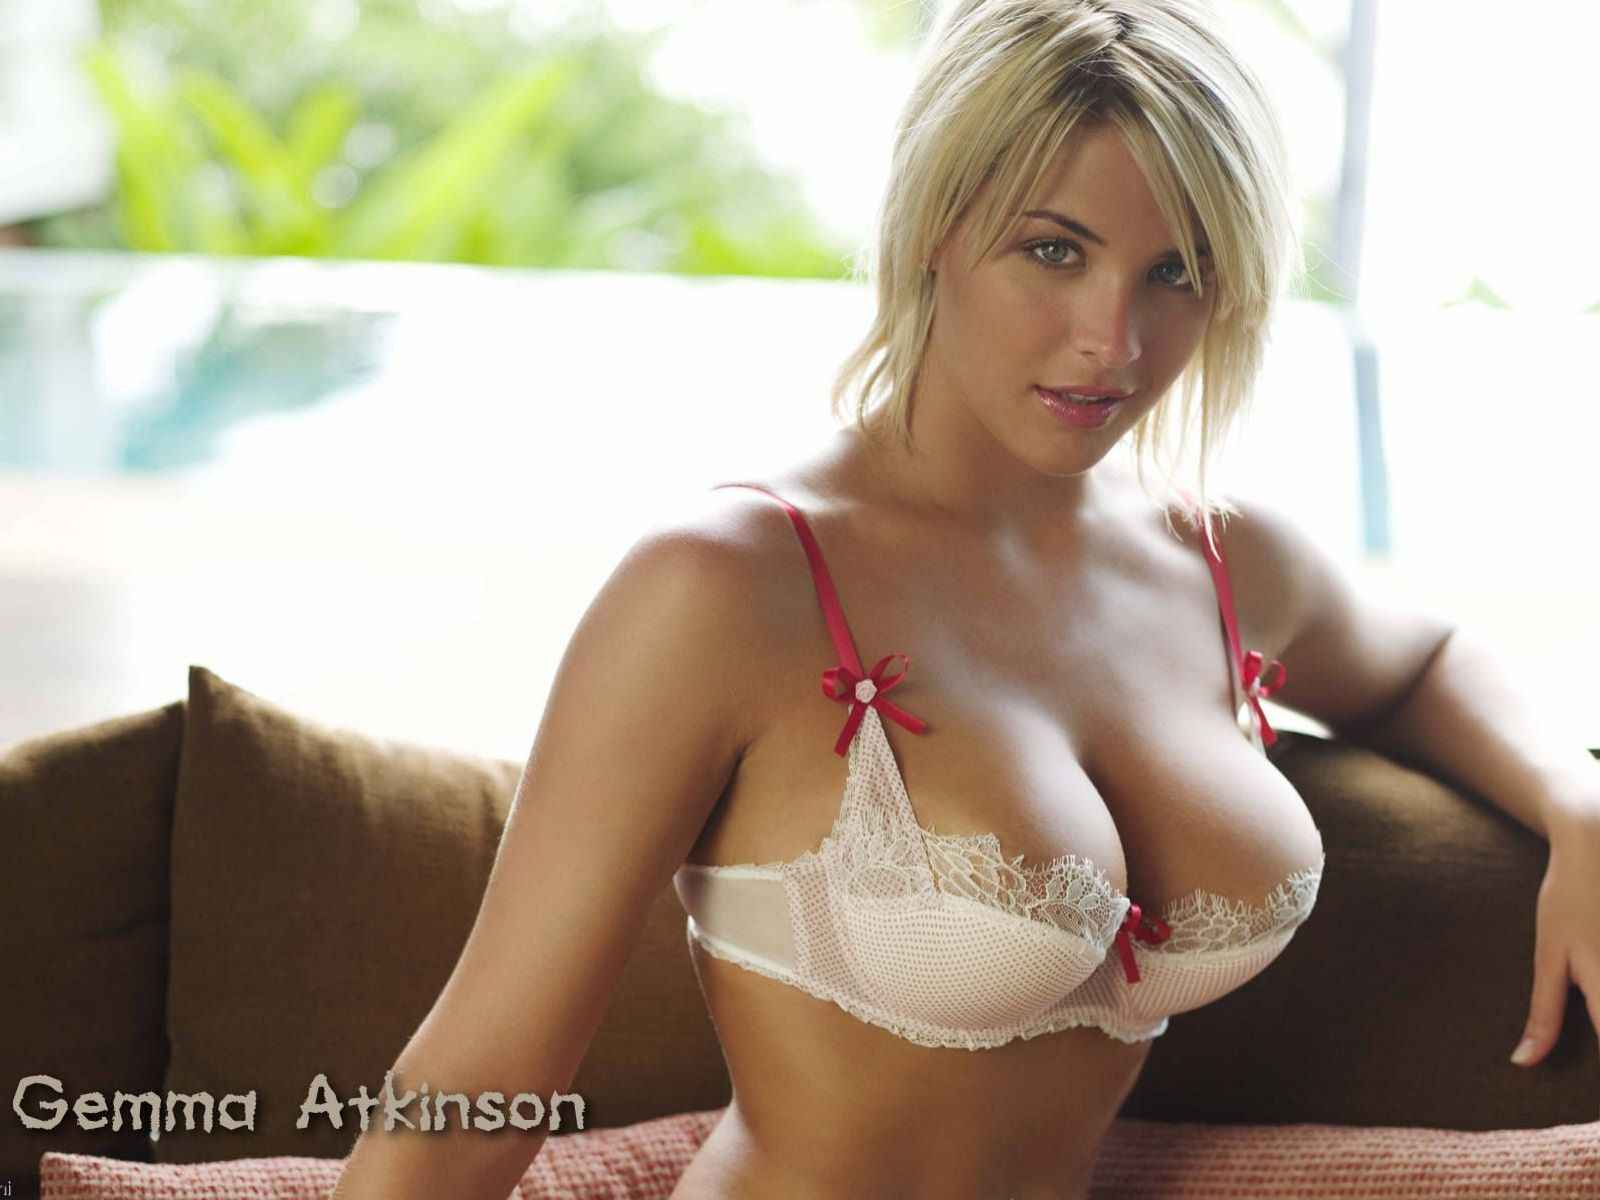 Gemma Atkinson With Lingerie Gallery Girls Idols Wallpaper